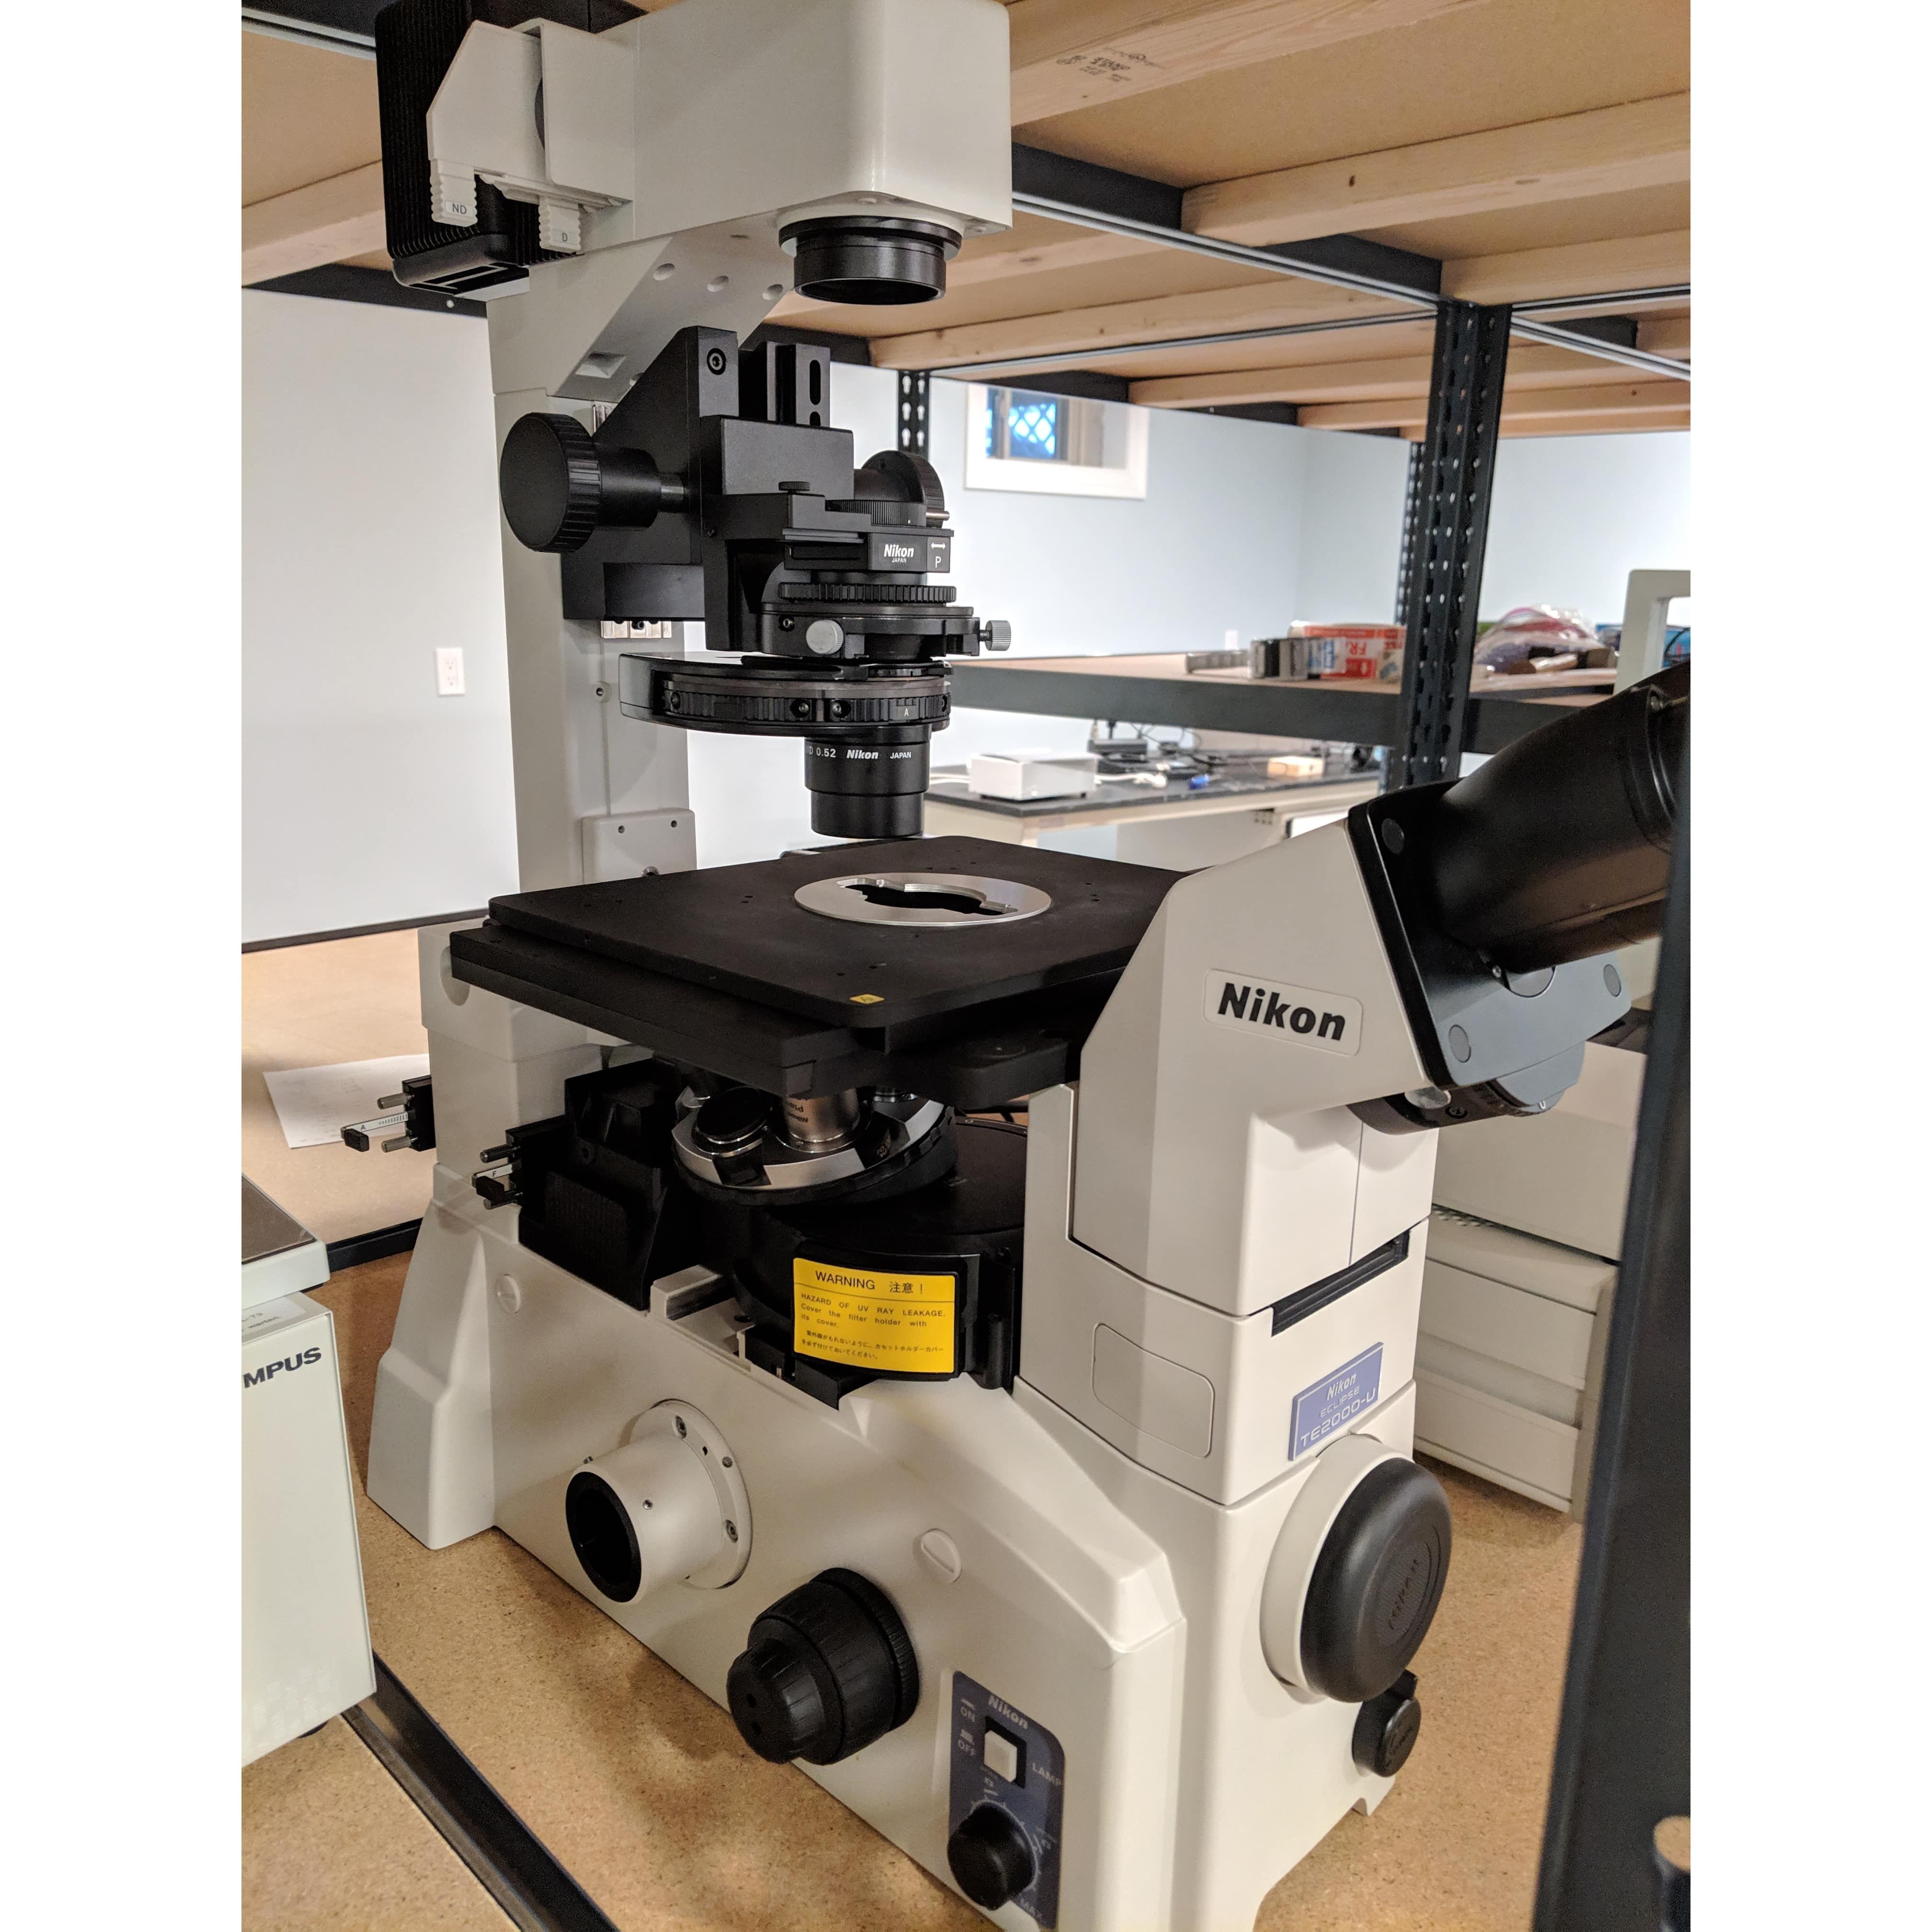 Nikon Eclipse TE 2000-U Phase Contrast DIC Fluorescence Inverted Microscope